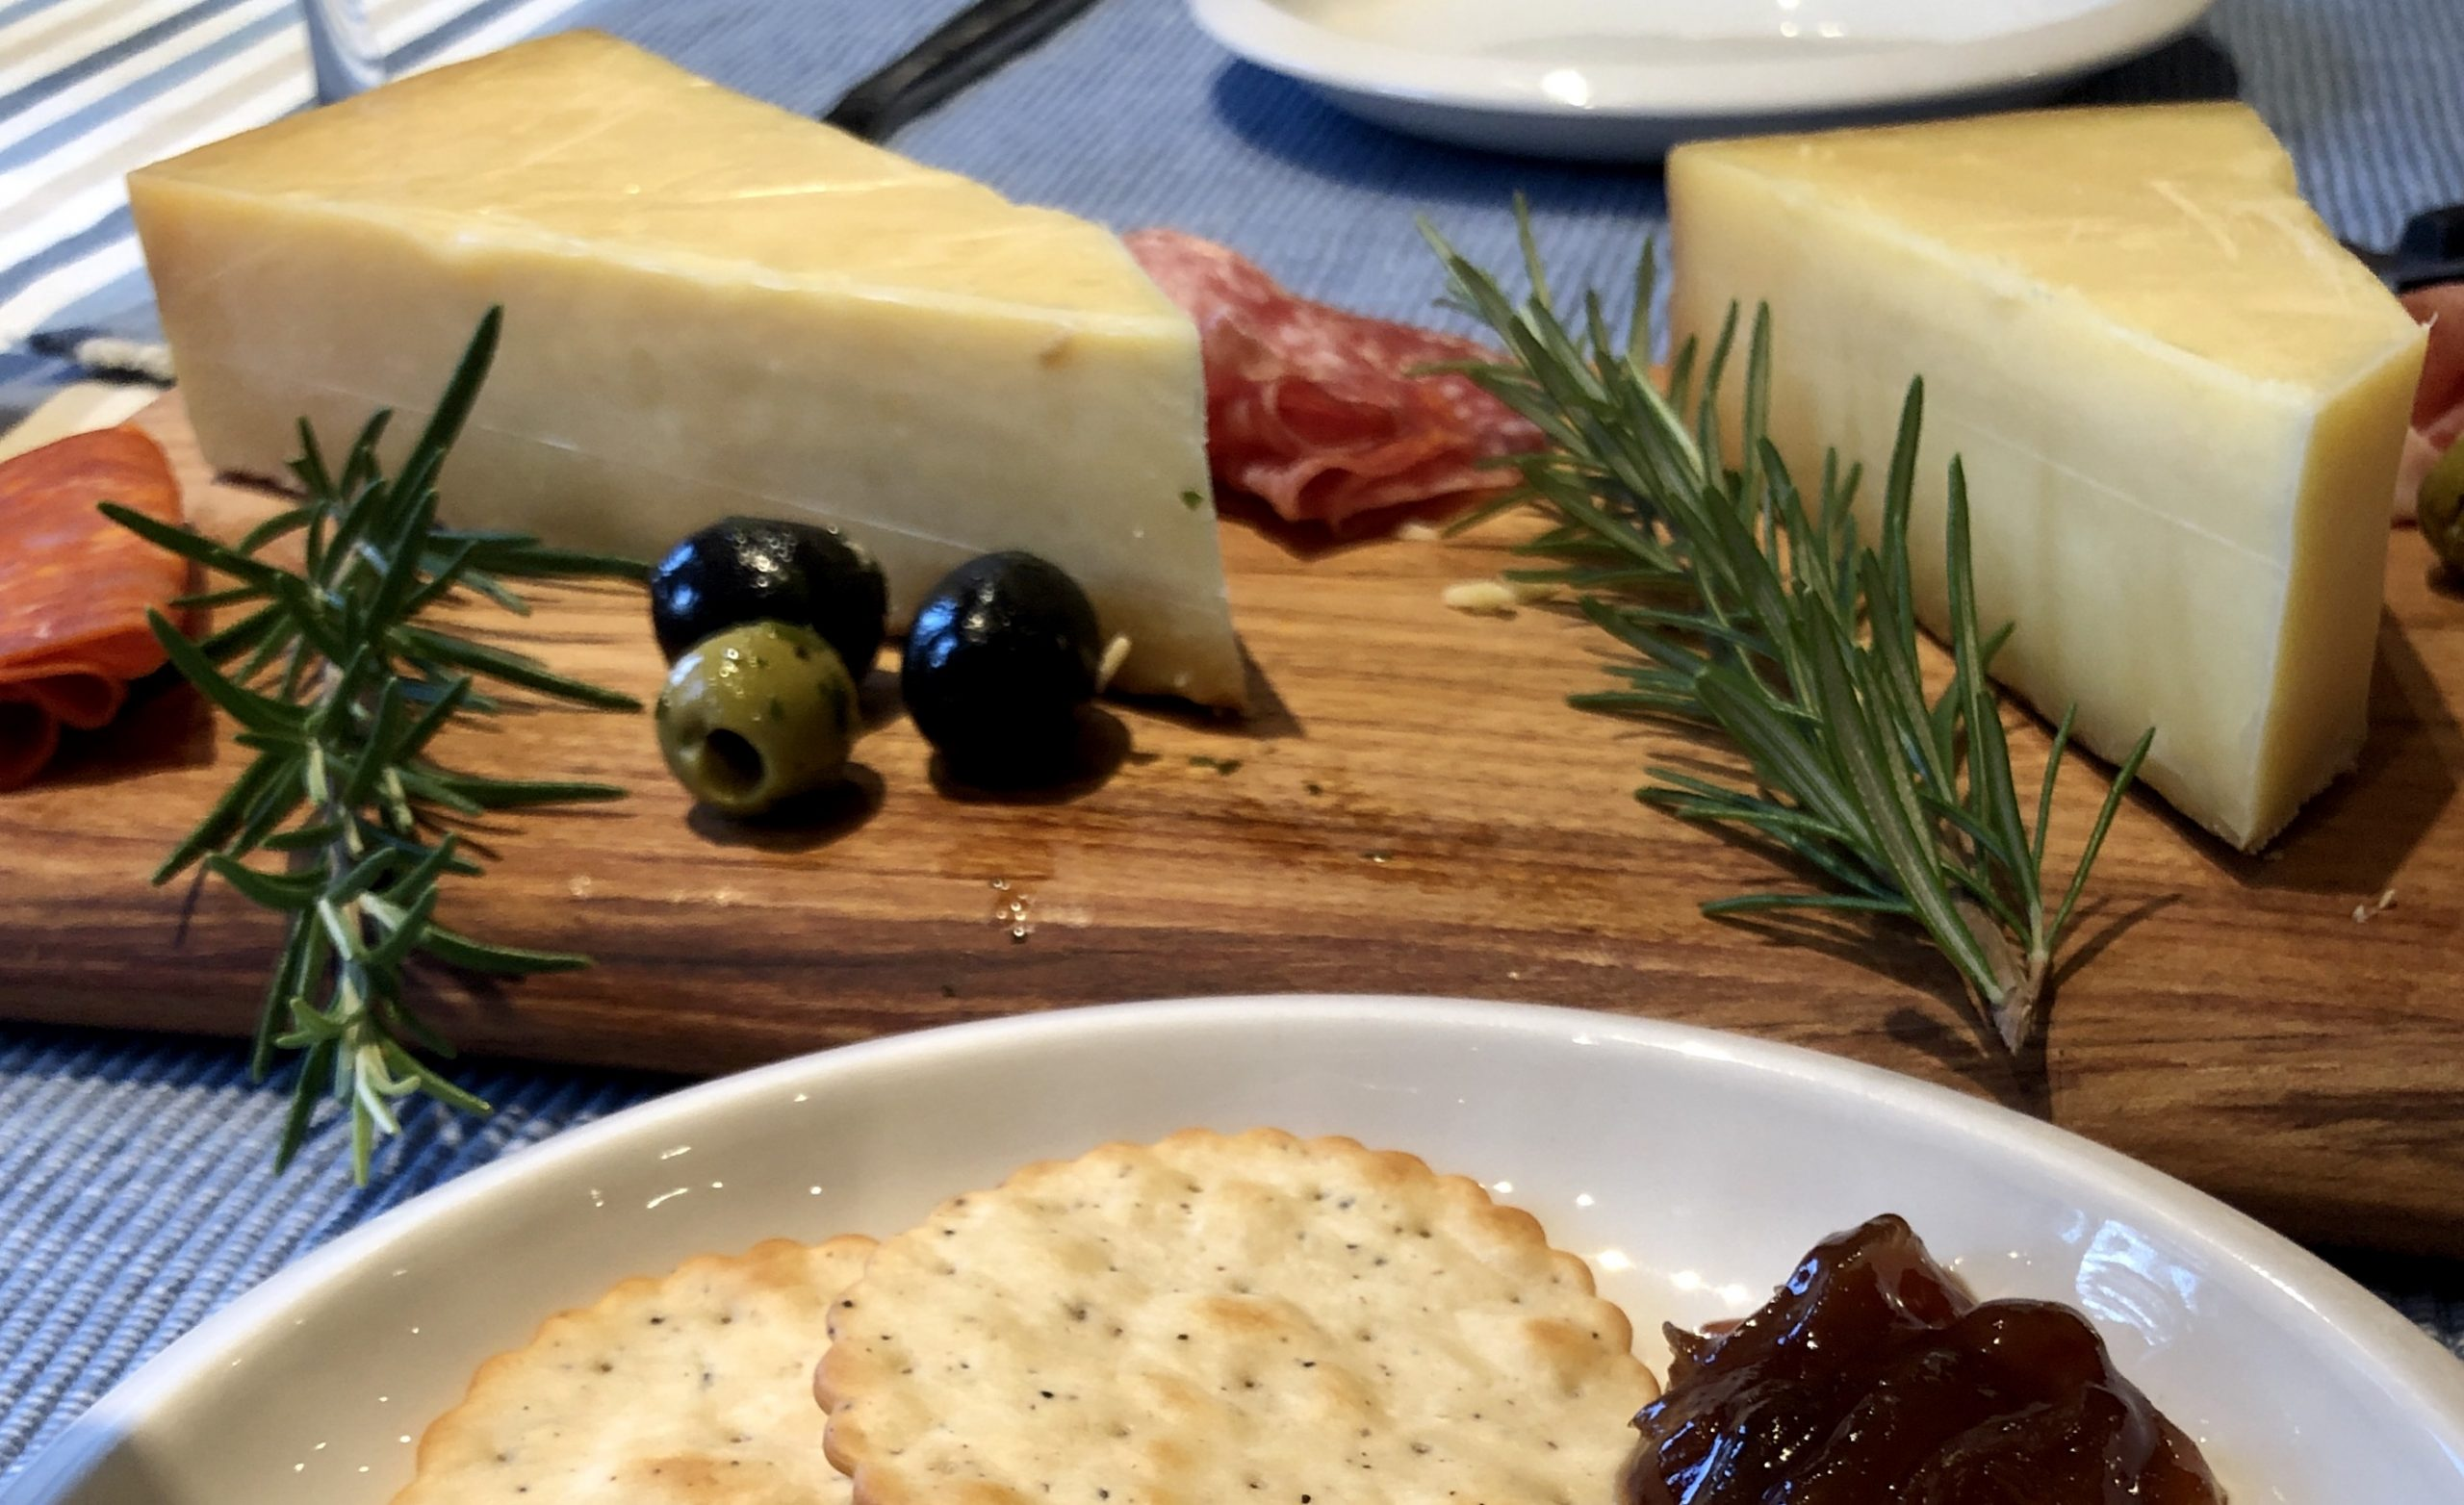 Sussex Gift Guide- cheeseboard with olives and salami